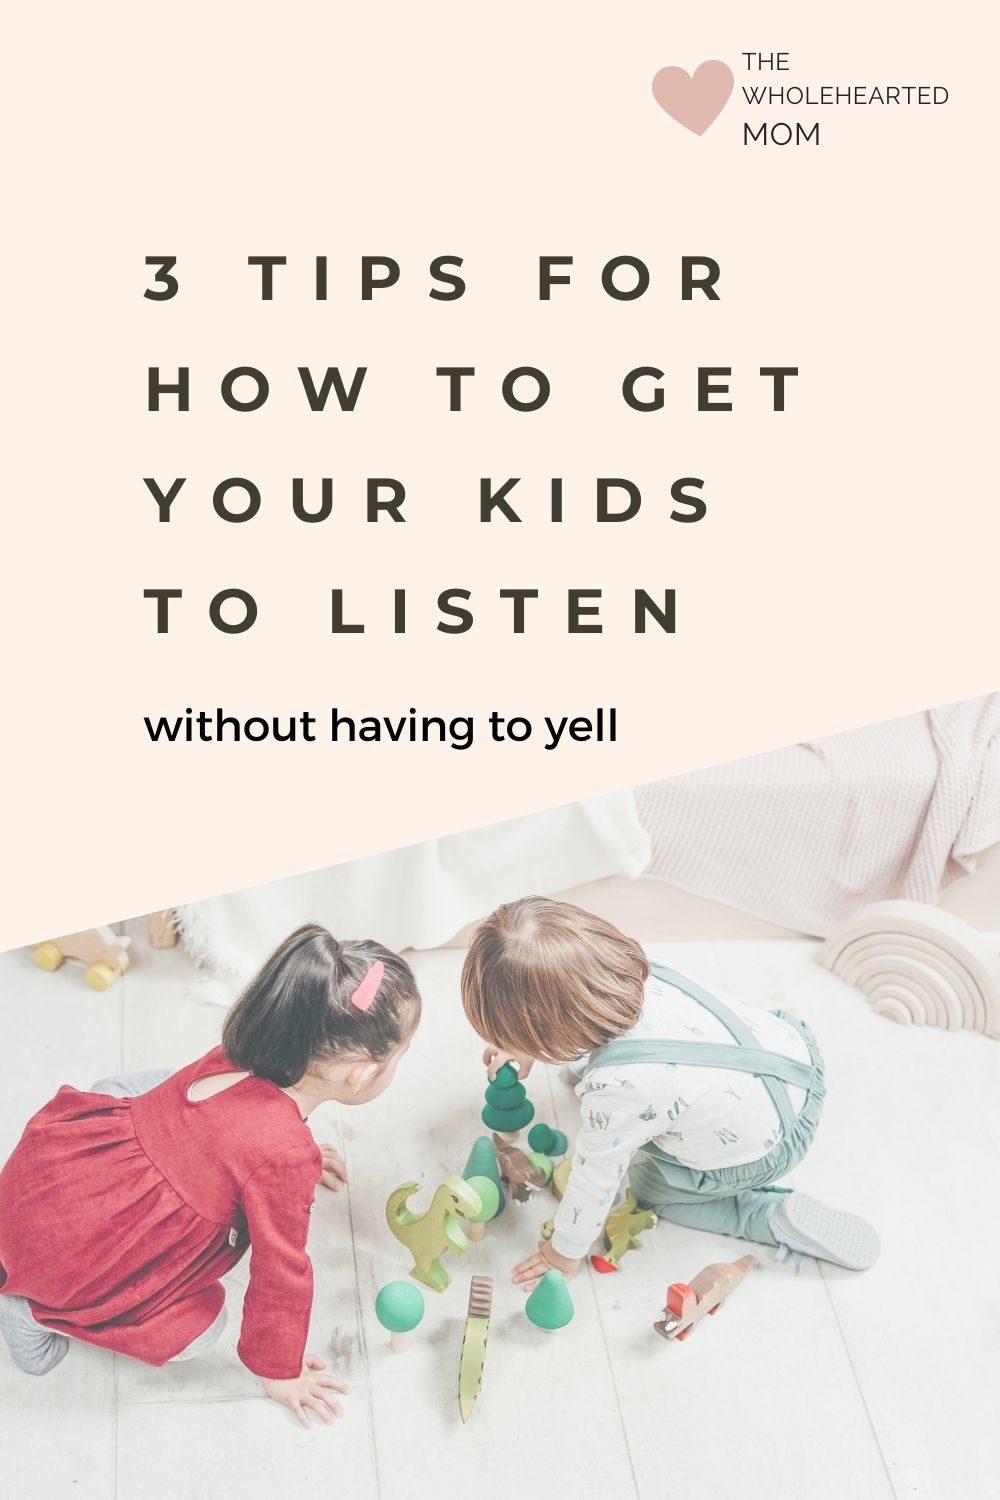 wanna know how to get your kids to listen to you?